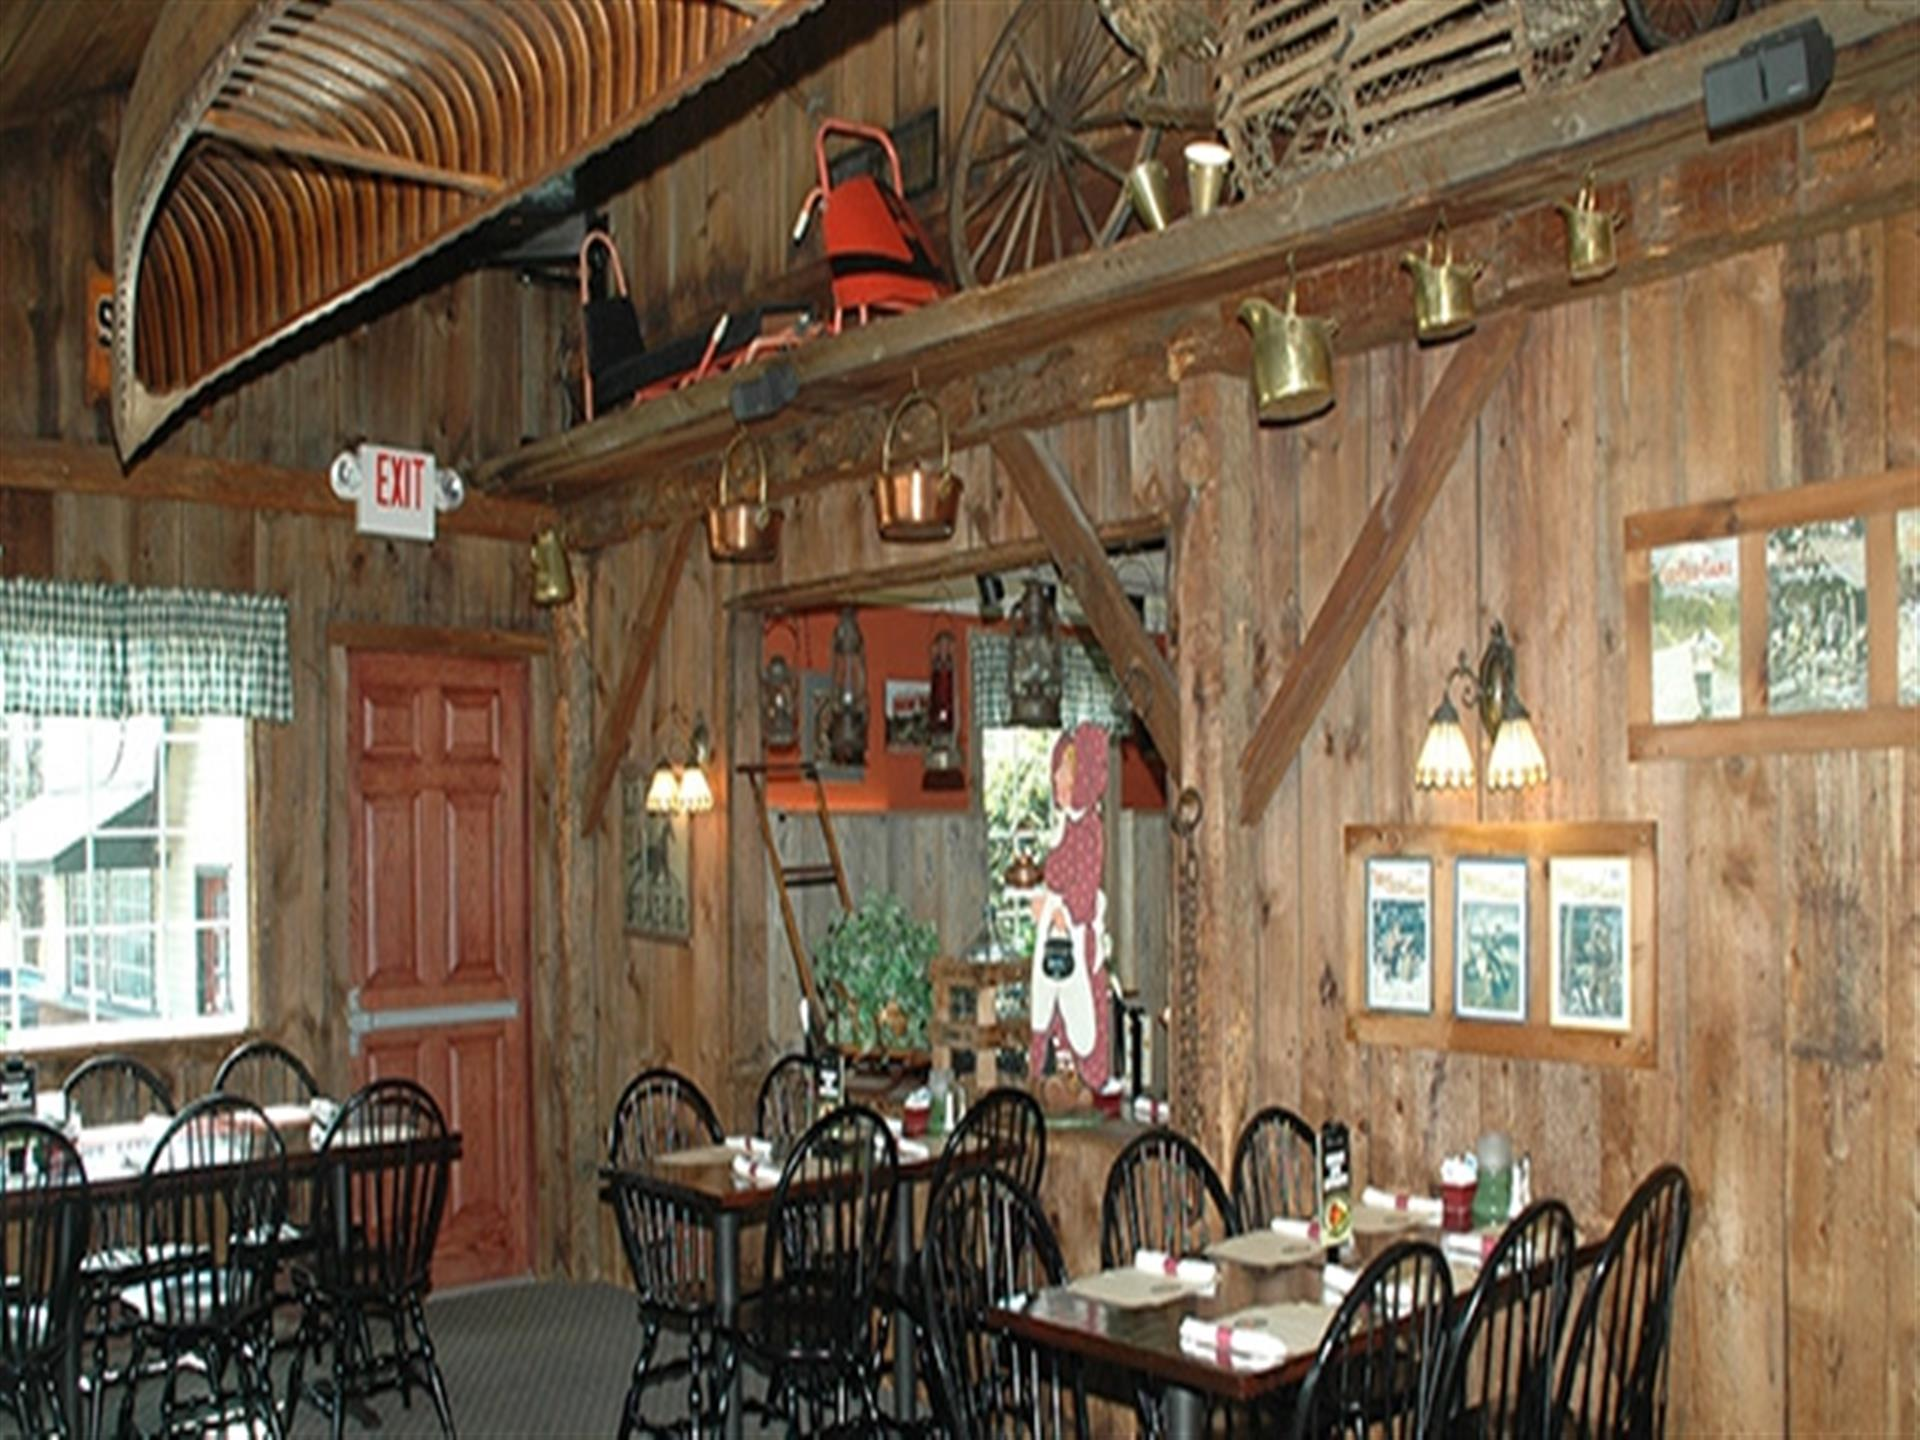 Inside the dining room at Apple Valley Restaurant.Wood walls and tables. Native American wall decor.